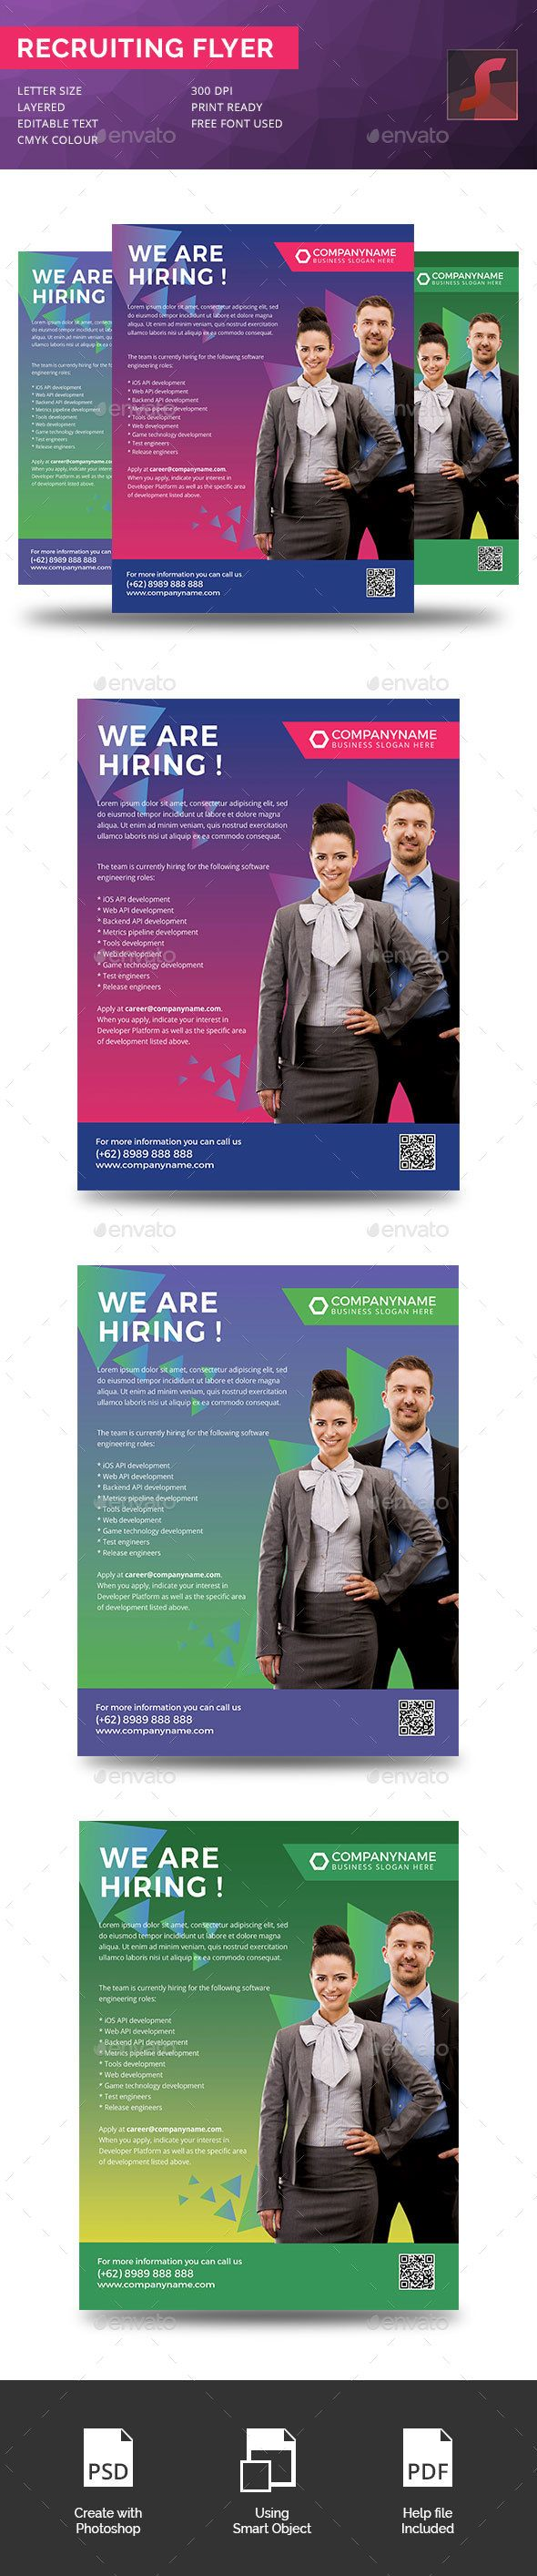 recruiting brochure template - 499 best images about brochure designs on pinterest